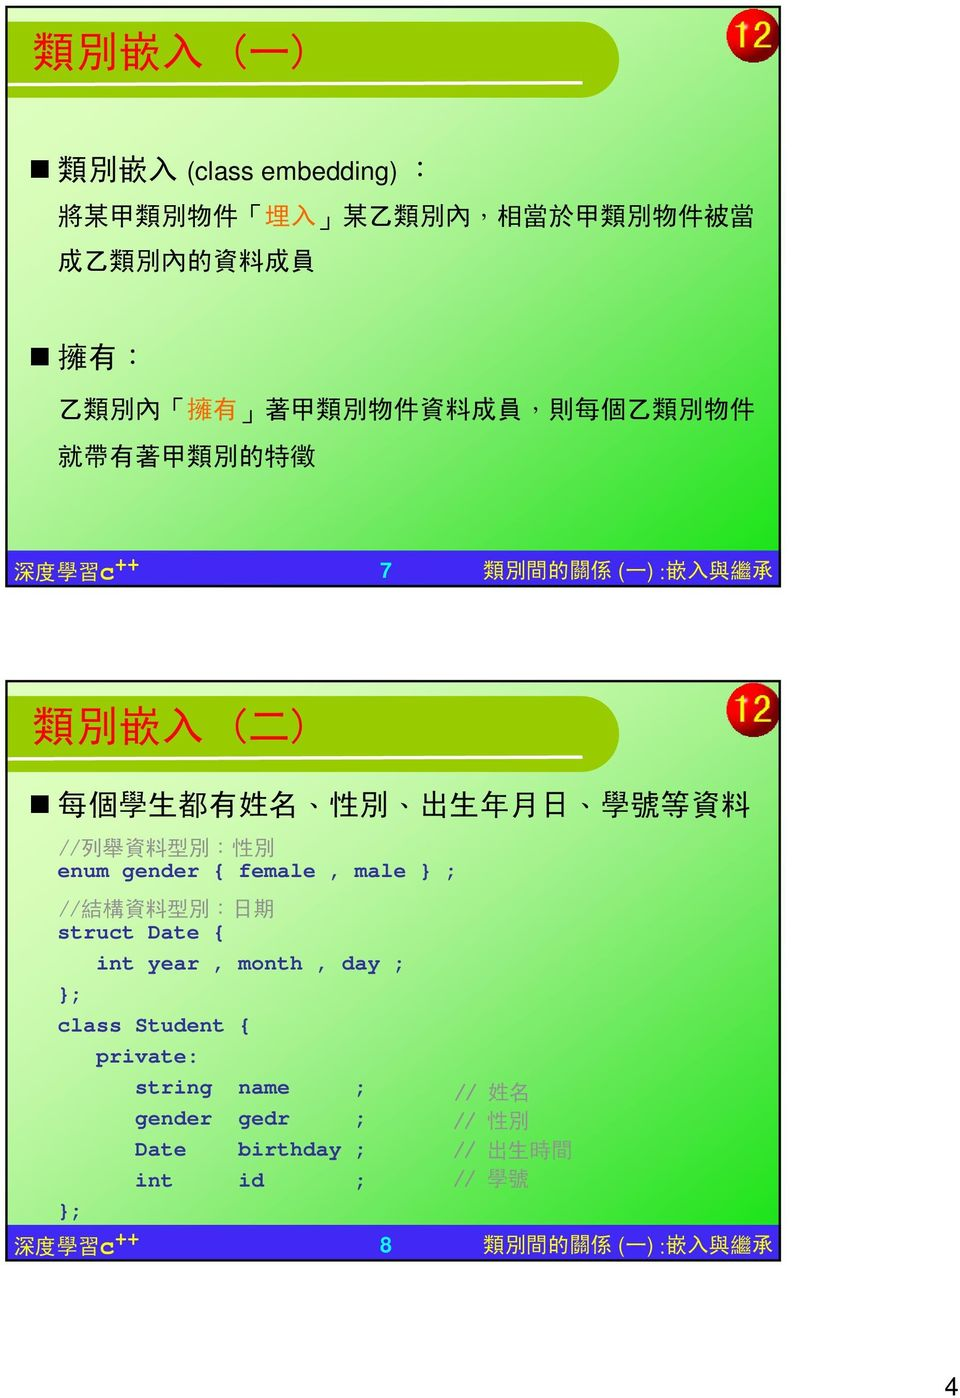 學 號 等 資 料 // 列 舉 資 料 型 別 : 性 別 enum gender { female, male } ; // 結 構 資 料 型 別 : 日 期 struct Date { int year, month, day ; class